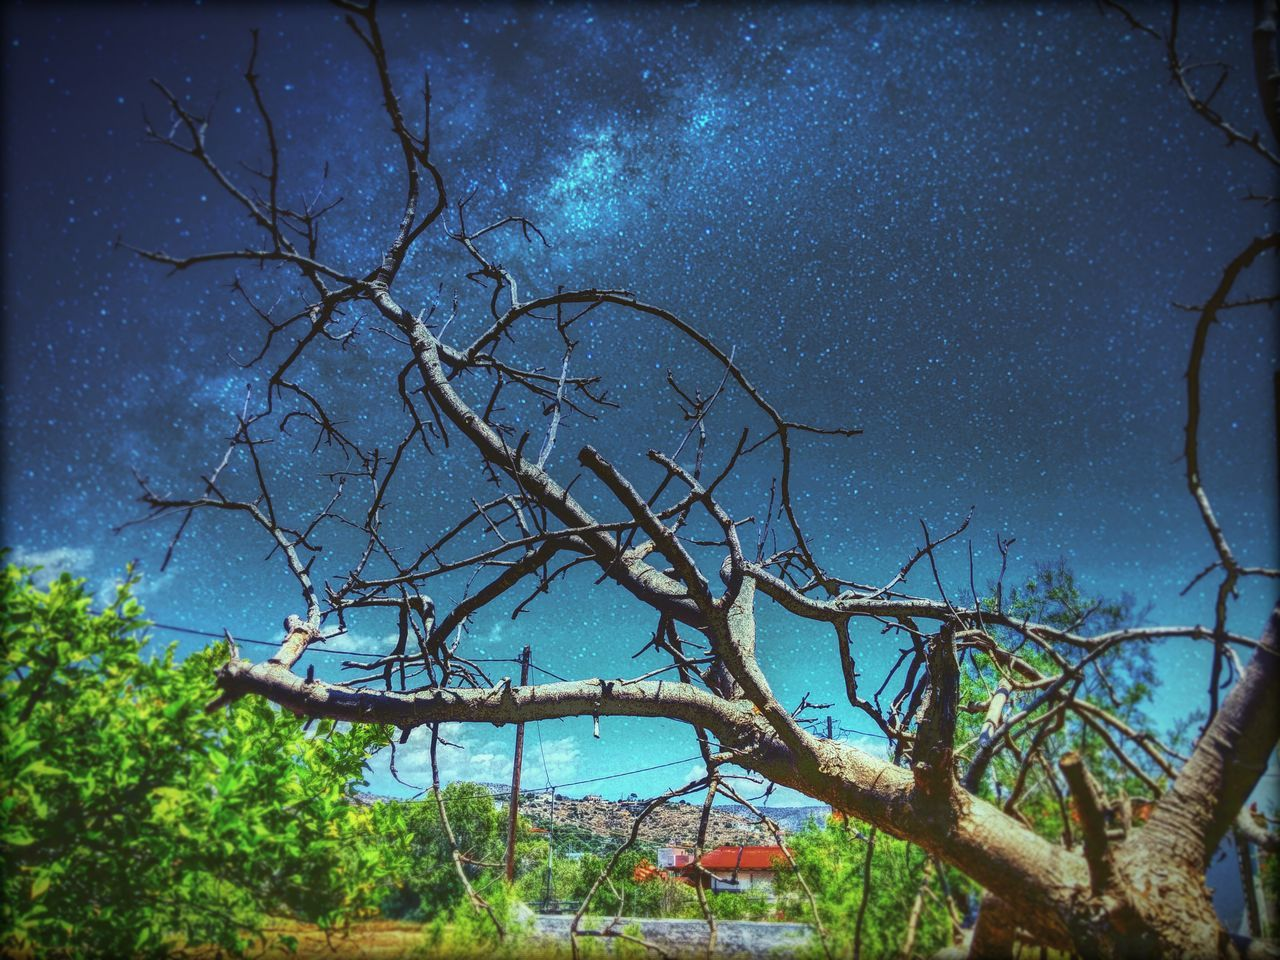 tree, no people, nature, branch, outdoors, sky, tranquility, bare tree, scenics, beauty in nature, blue, night, star - space, tree trunk, growth, astronomy, galaxy